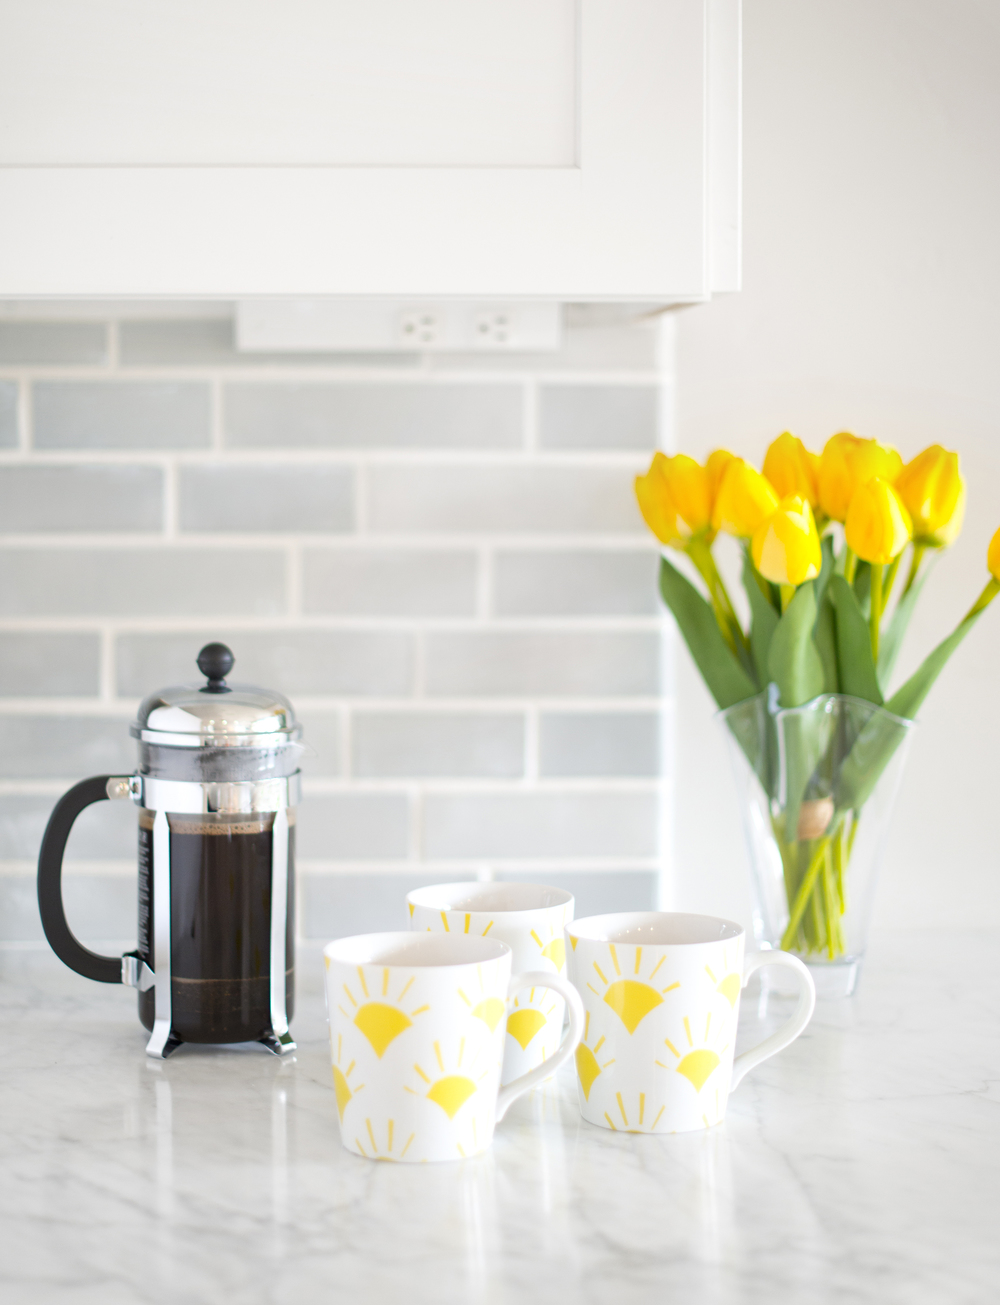 Sun-Kissed Spring Breakfast~ Serve your morning coffee in these adorable Sunrise mugs from Crate & Barrel!